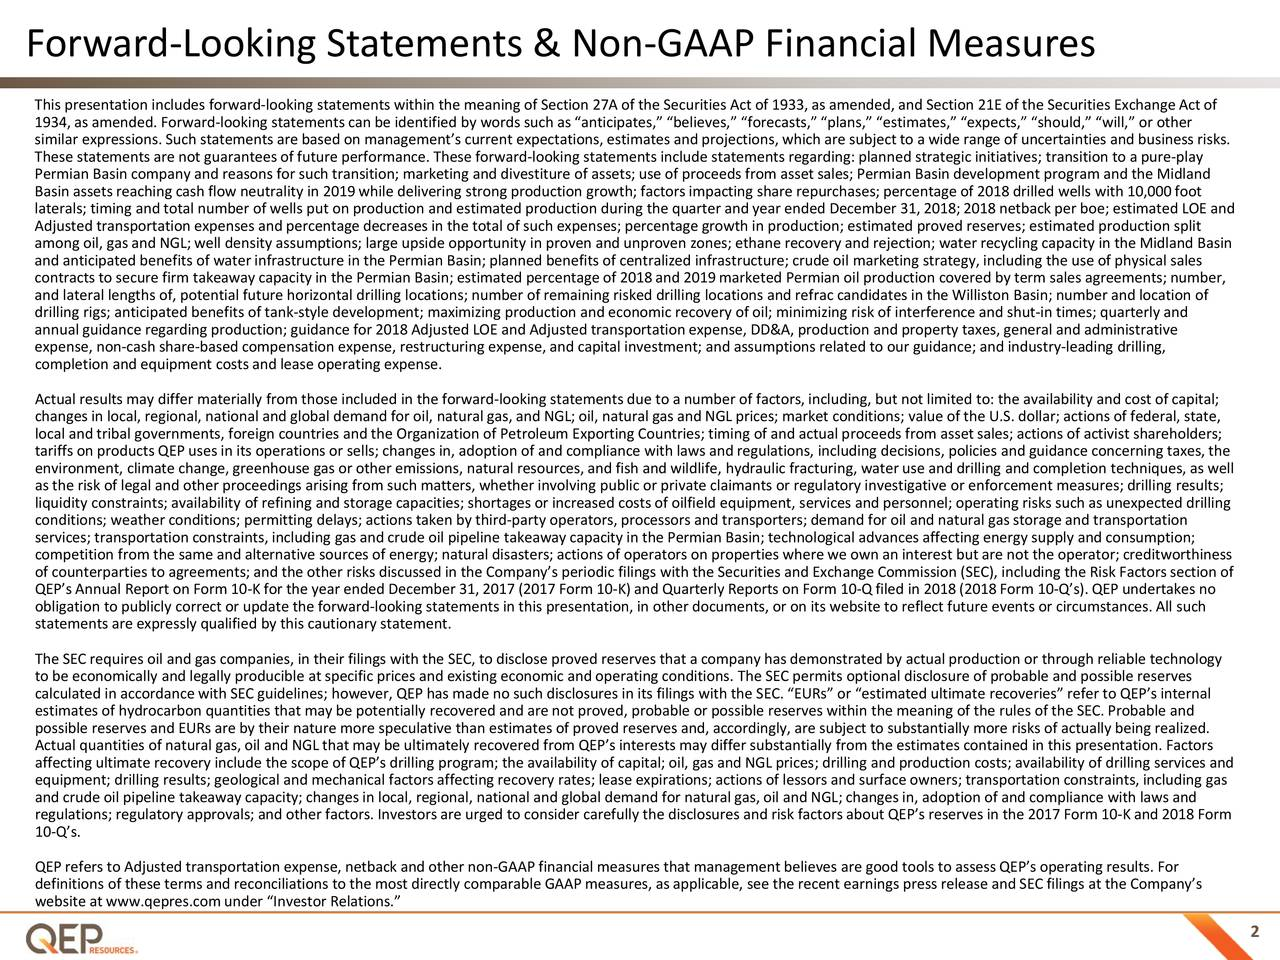 """This presentation includes forward-looking statements within the meaning of Section 27A of the Securities Act of 1933,as amended, and Section 21E of the Securities Exchange Act of 1934, as amended. Forward-looking statements can be identified by words such as """"anticipates,"""" """"believes,"""" """"forecasts,"""" """"plans,"""" """"estimates,"""" """"expects,"""" """"should,"""" """"will,"""" or other similar expressions. Such statements are based on management's current expectations, estimates and projections, which are subject to a wide range of uncertainties and business risks. These statements are not guarantees of future performance. These forward-looking statements include statements regarding: planned strategic initiatives; transition to a pure-play Permian Basin company and reasons for such transition; marketing and divestiture of assets; use of proceeds from asset sales;Permian Basin development program and the Midland Basin assets reaching cash flow neutrality in 2019 while delivering strong production growth; factors impacting share repurchases; percentage of 2018 drilled wells with 10,000 foot laterals; timing and total number of wells put on production and estimated production during the quarter and year ended December 31, 2018;2018netback per boe; estimated LOE and Adjusted transportation expenses and percentage decreases in the total of such expenses; percentage growth in production; estimated proved reserves; estimated production split among oil, gas and NGL;well density assumptions; large upside opportunity in proven and unproven zones; ethane recovery and rejection; water recycling capacity in the Midland Basin and anticipated benefits of water infrastructure in the Permian Basin; planned benefits of centralized infrastructure; crude oil marketing strategy, including the use of physical sales contracts to secure firm takeaway capacity in the Permian Basin; estimated percentage of 2018and 2019marketed Permian oil production covered by term sales agreements; number, and lateral lengths of, pote"""